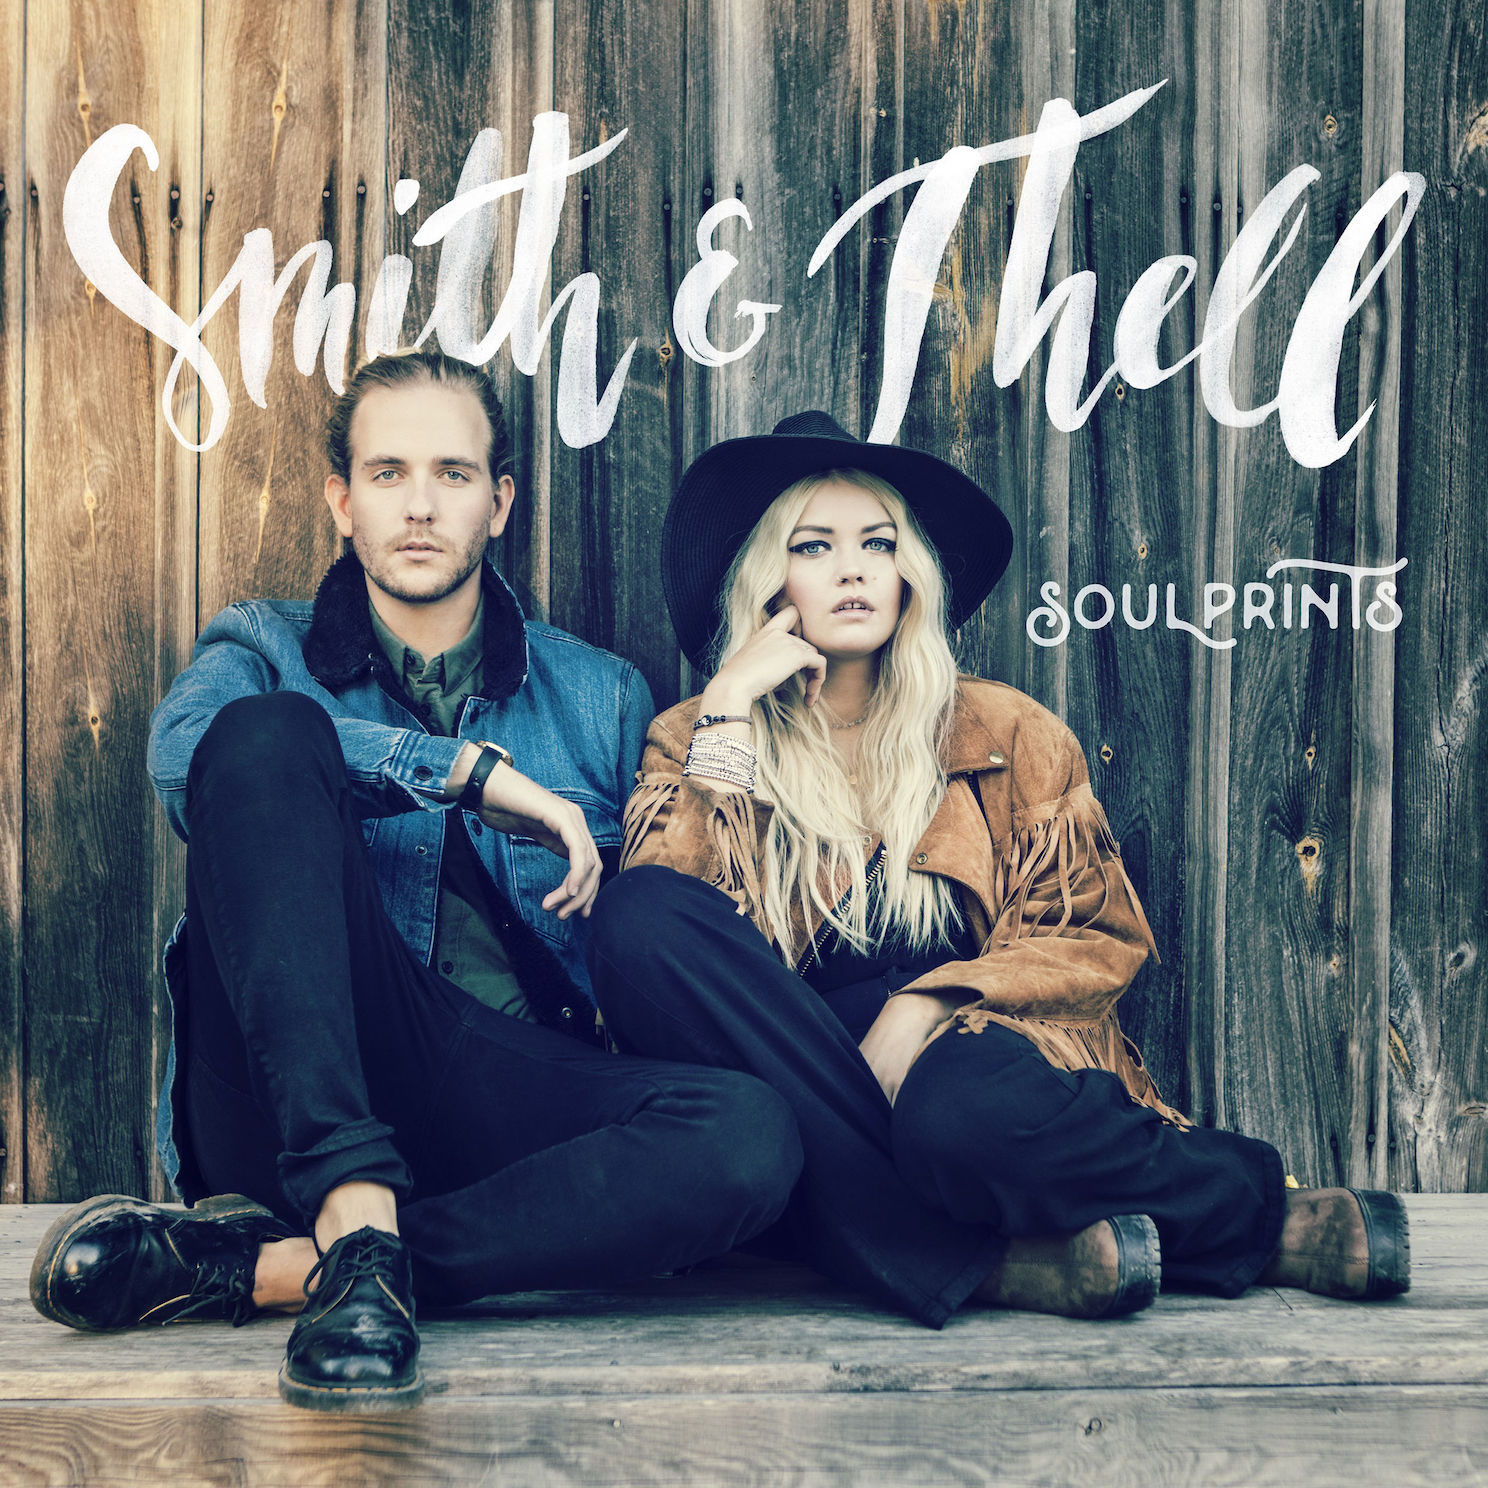 Soulprints - Smith & Thell